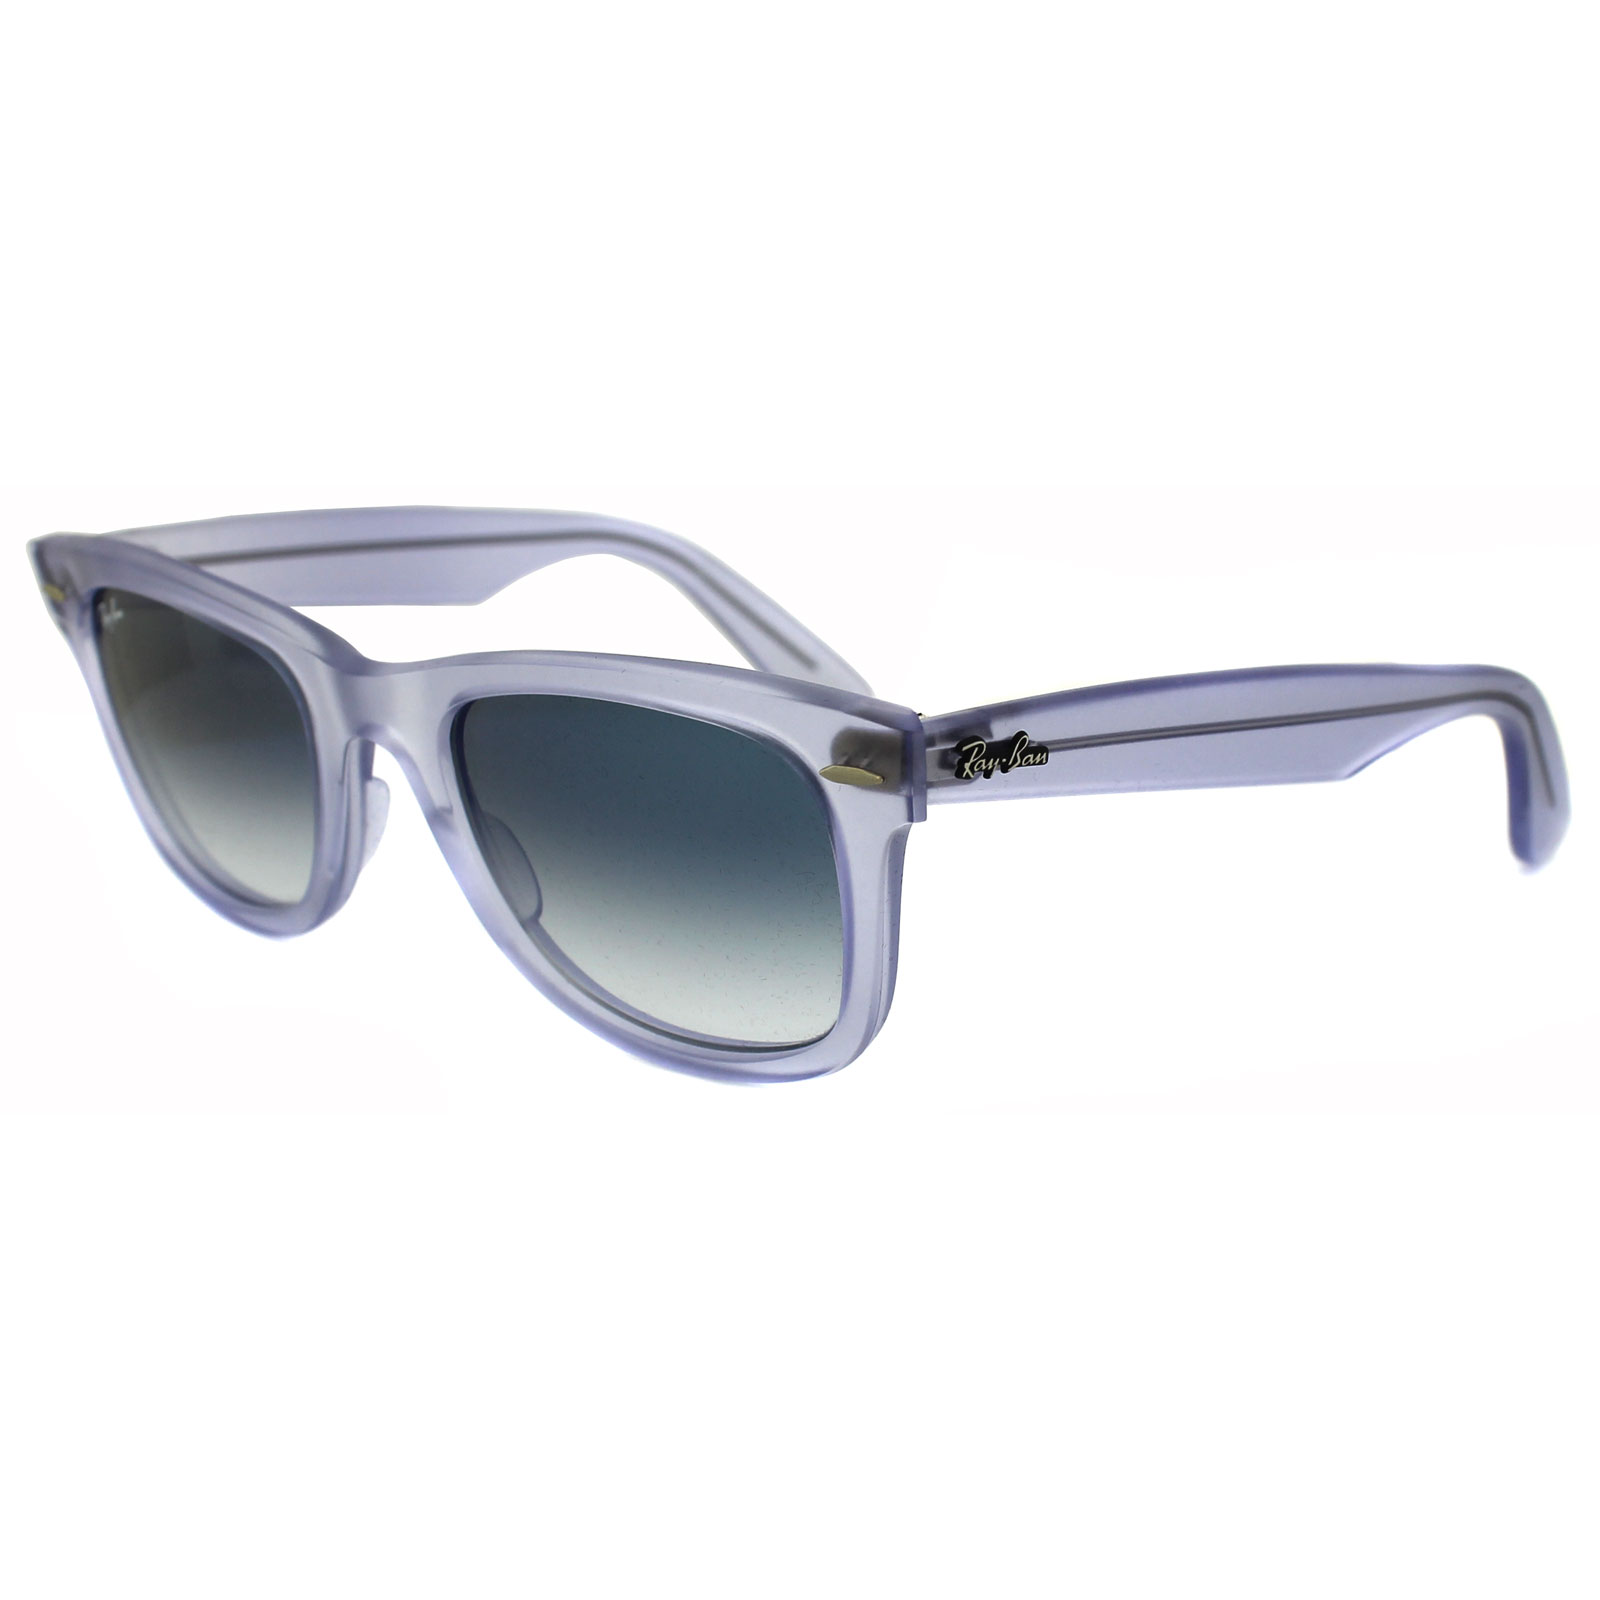 443edf5b49 Sentinel Ray-Ban Sunglasses Wayfarer 2140 60603F IcePop Grape Lilac Blue  Grey Gradient M